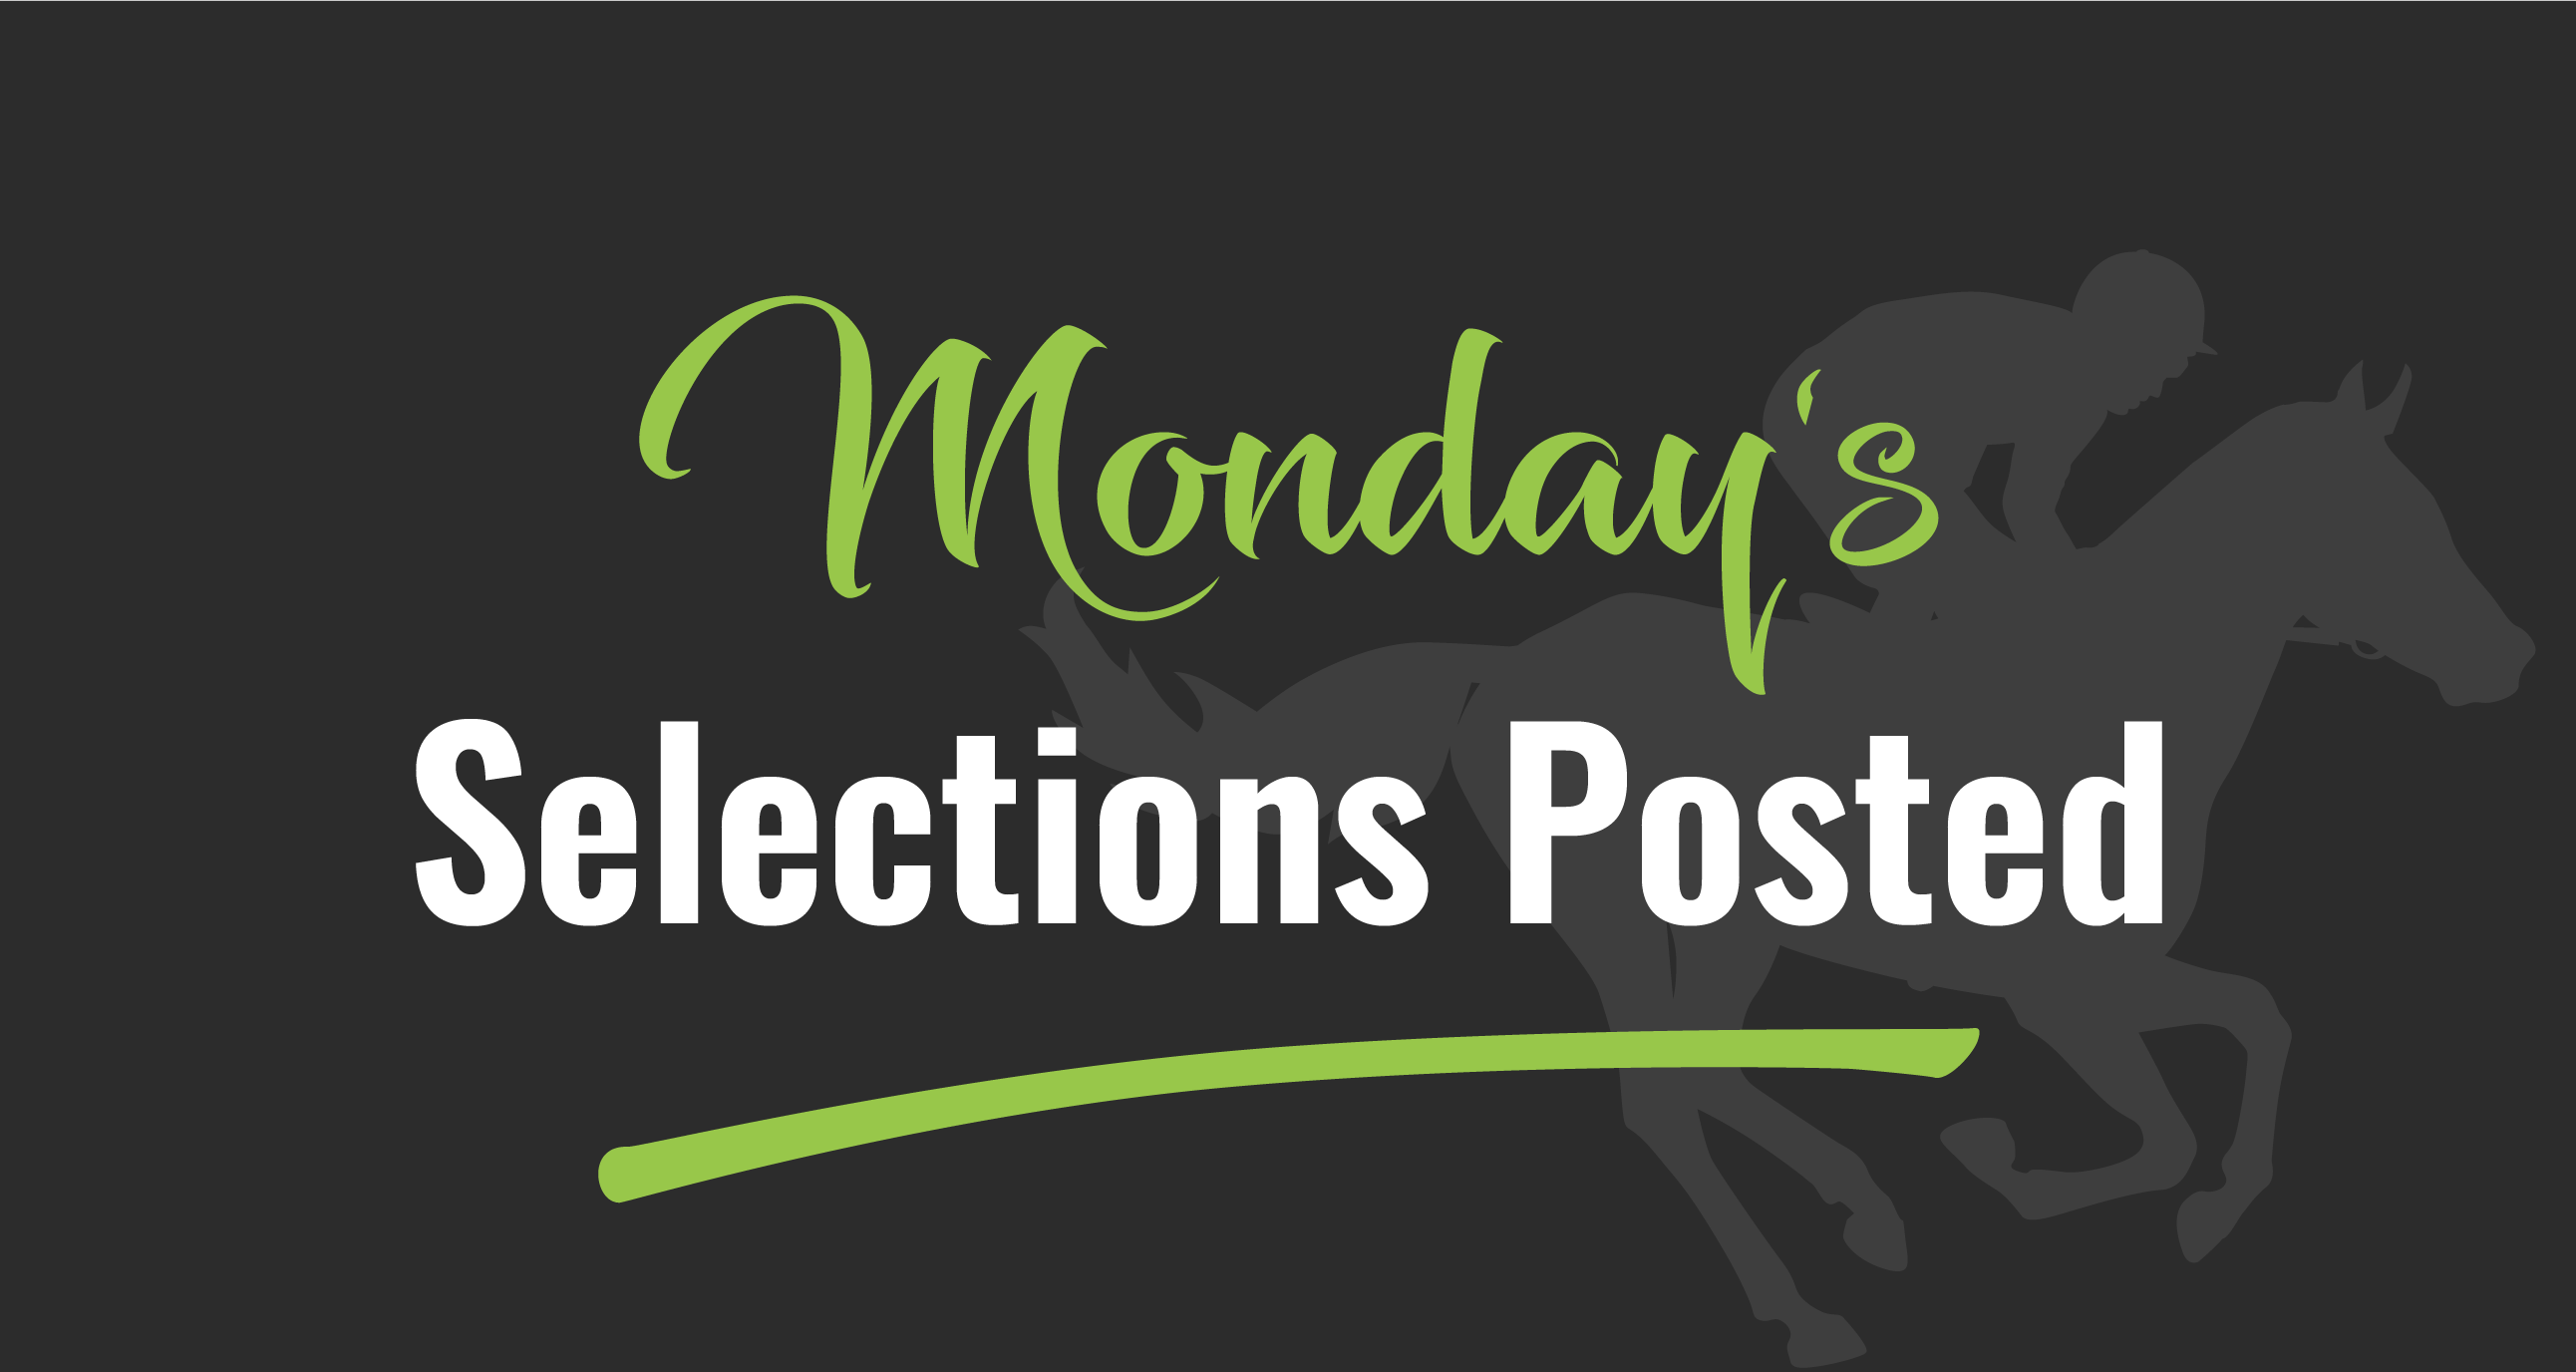 Selections for Monday 5 August 2019